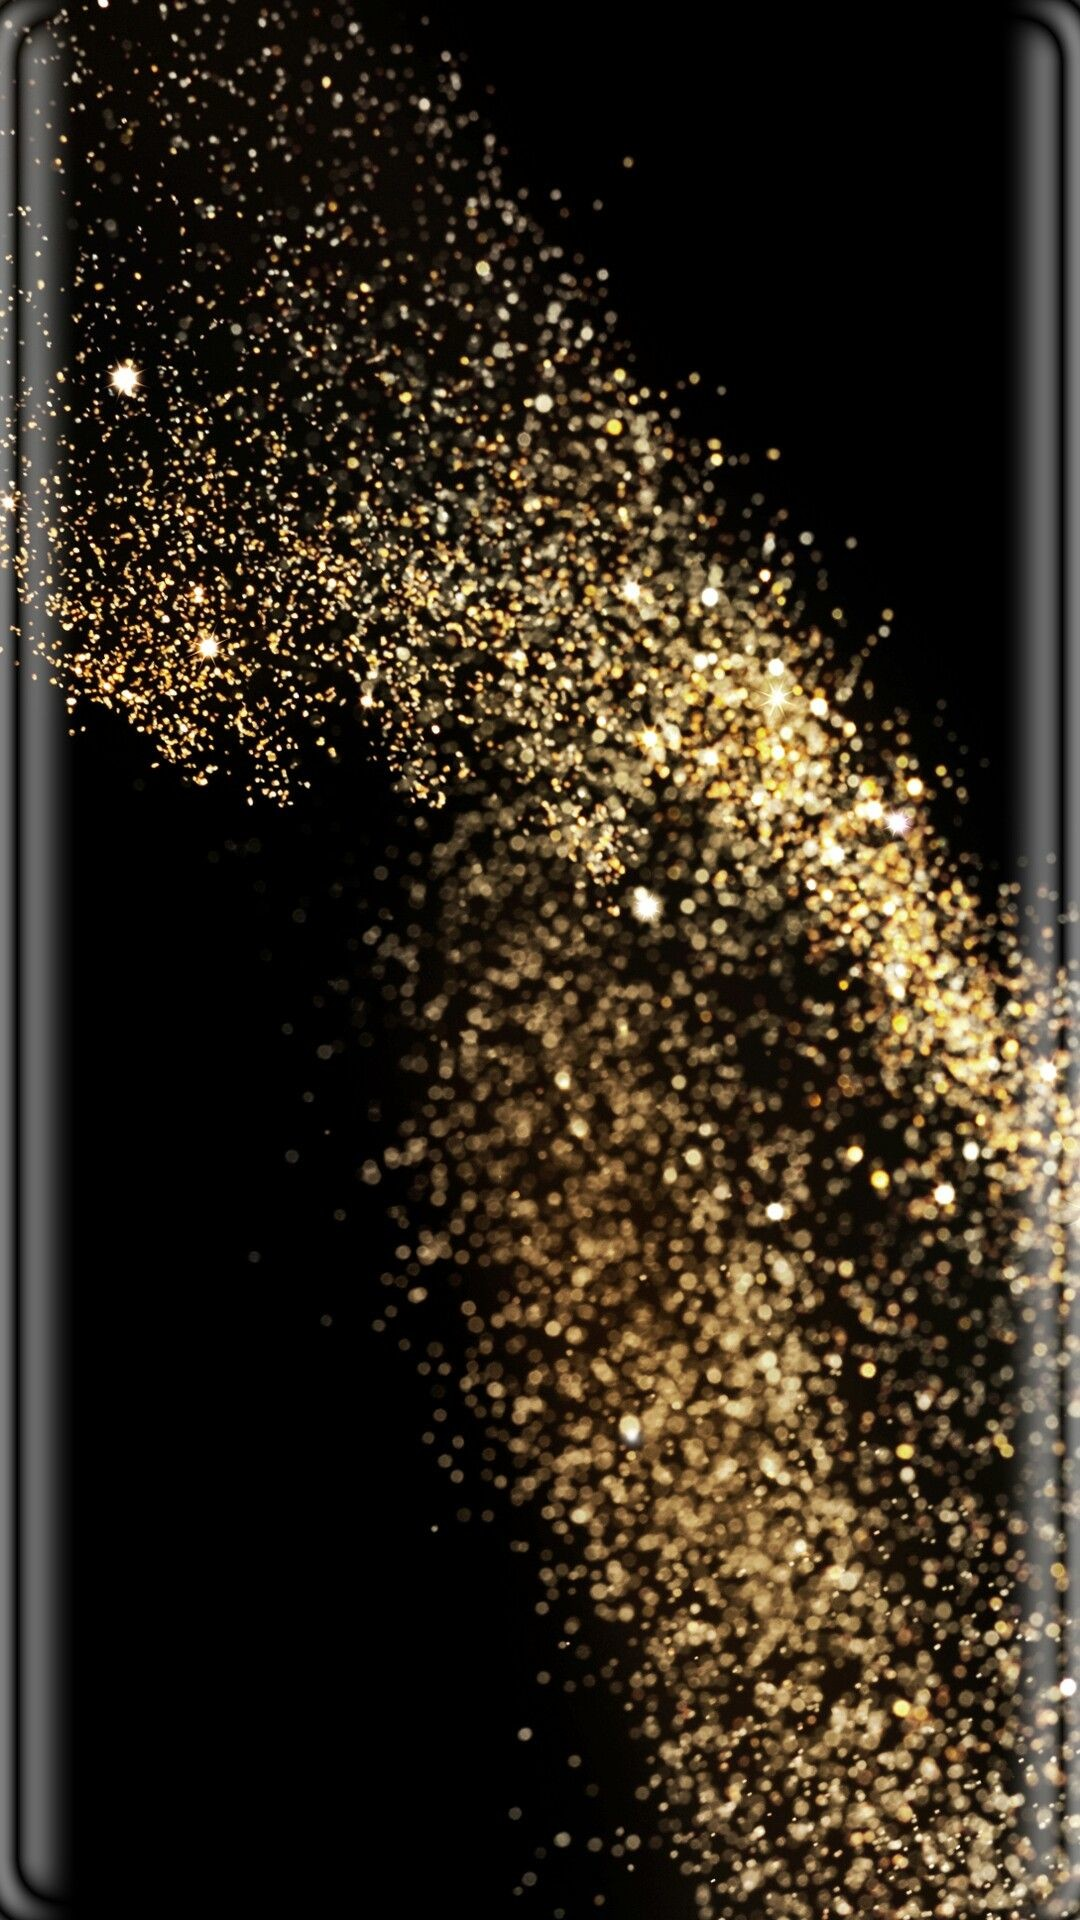 Res: 1080x1920, Black with Gold Dust Wallpaper